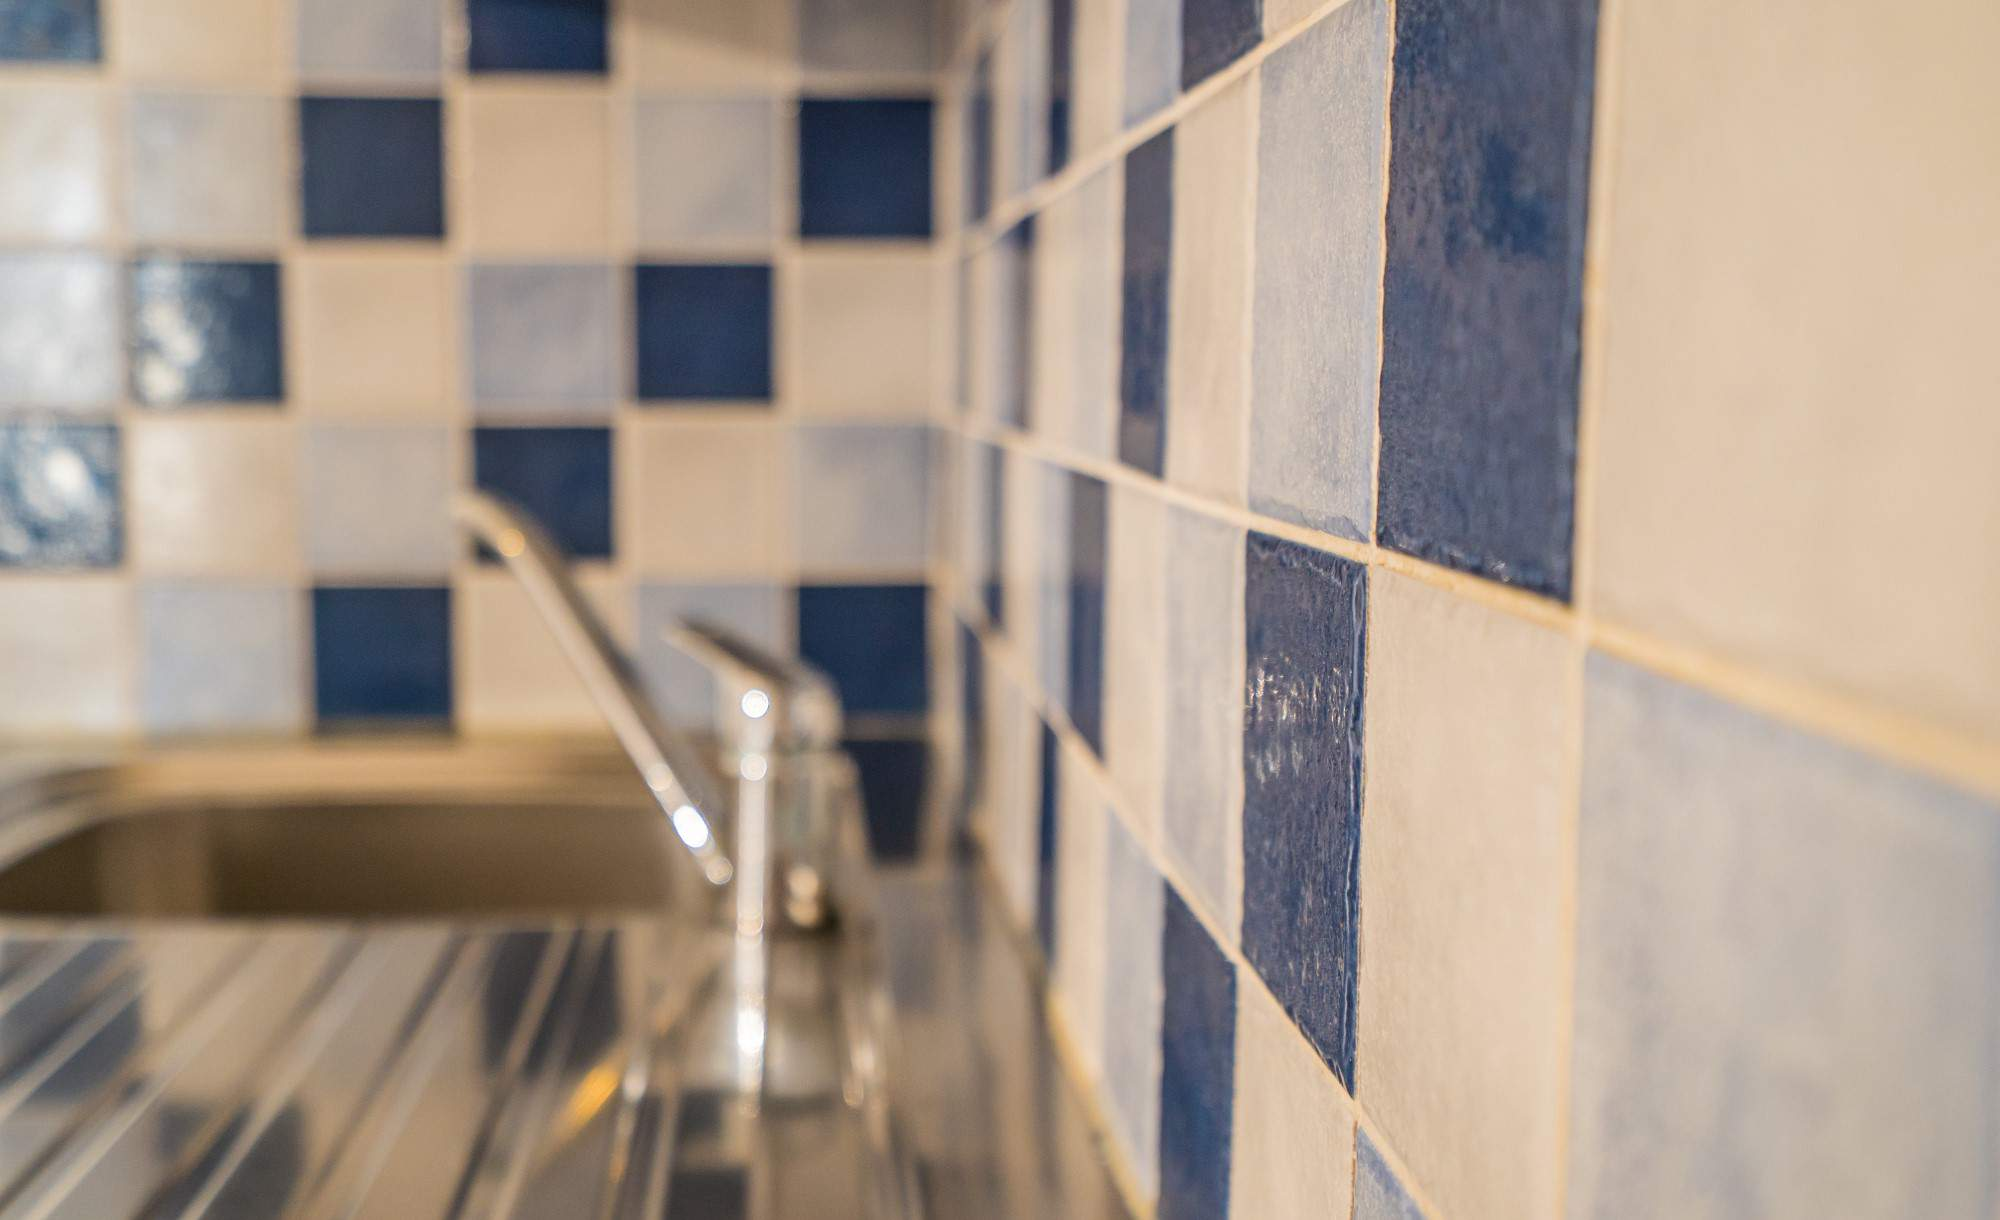 The photo shows a modern bathroom and colorful tiles